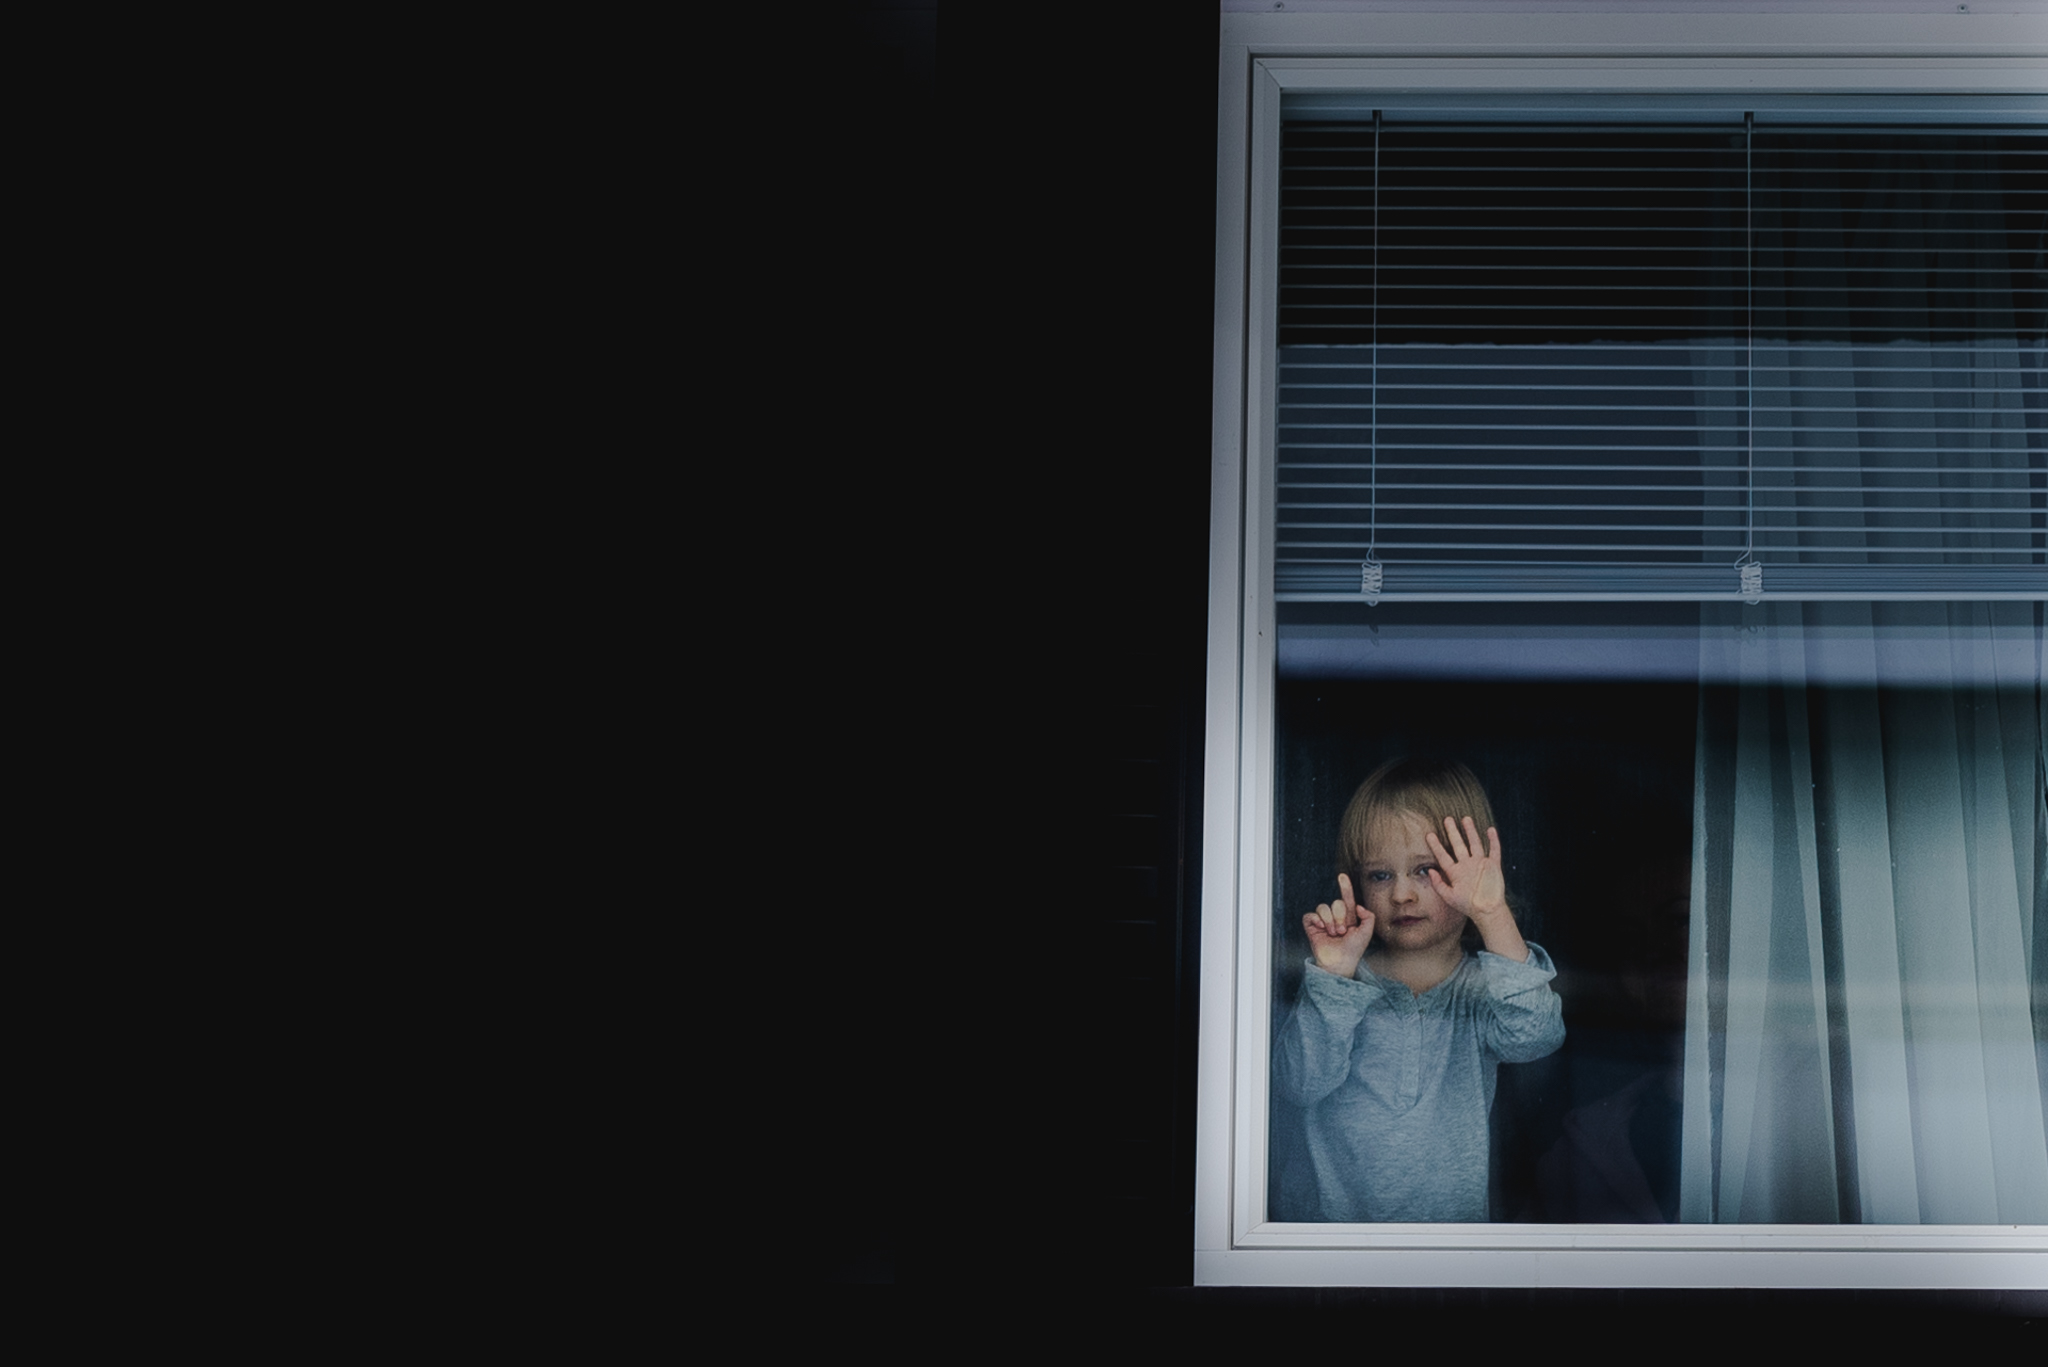 Little girl standing at the window